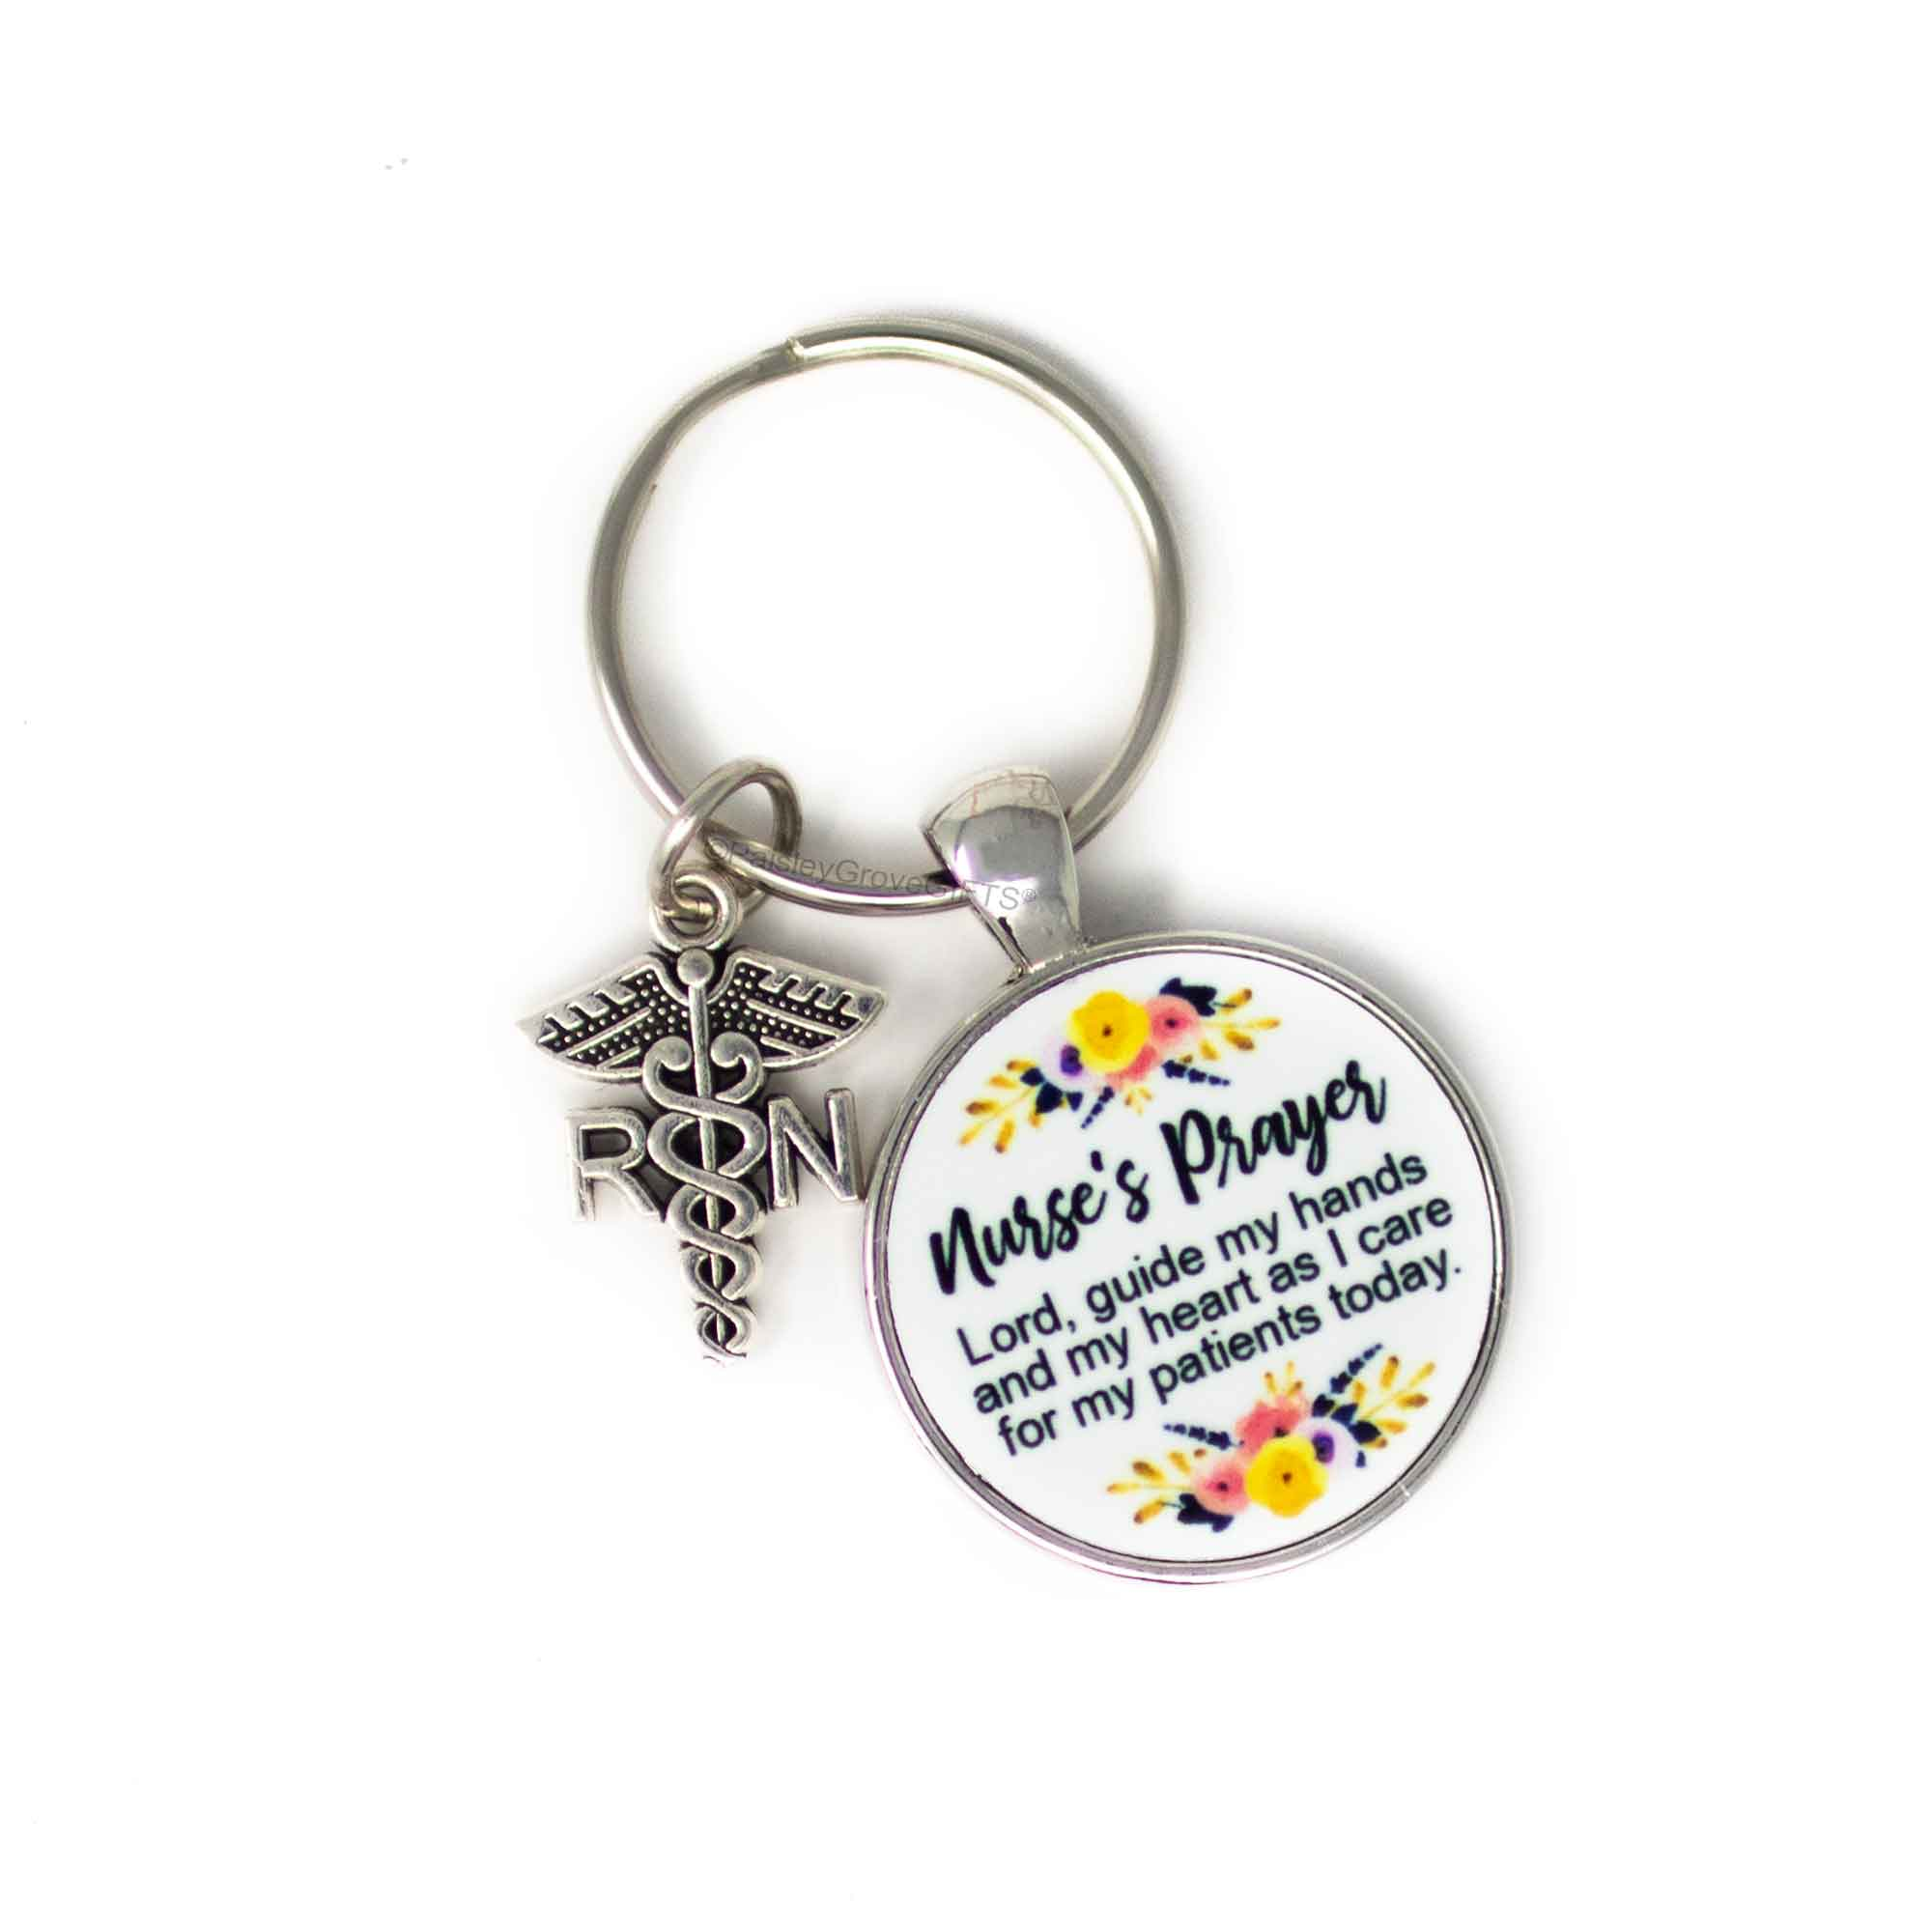 Copyright PaisleyGroveGIFTS S006c Nurse's Prayer Keychain with watercolor flowers